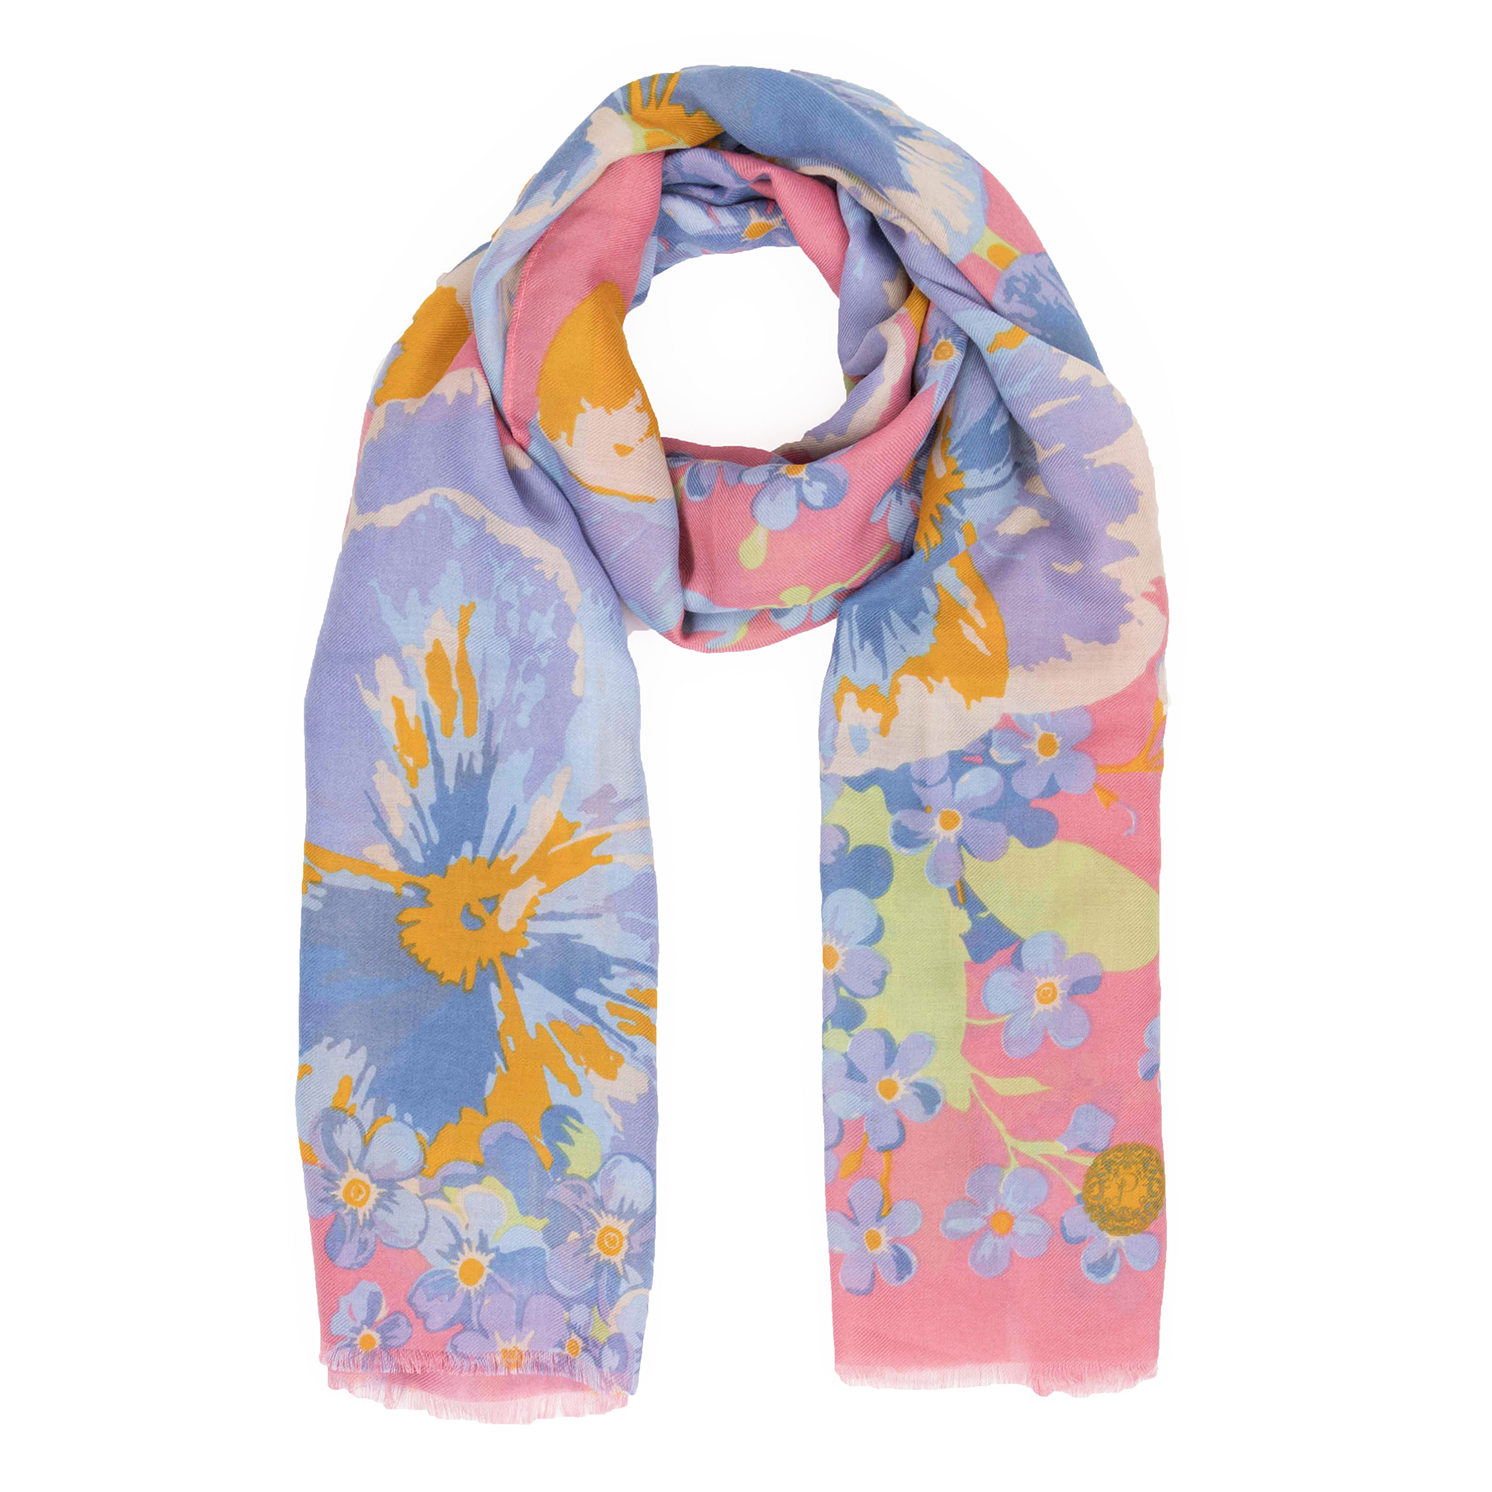 Powder – Pink Pansy Print Scarf with Powder Presentation Gift Bag